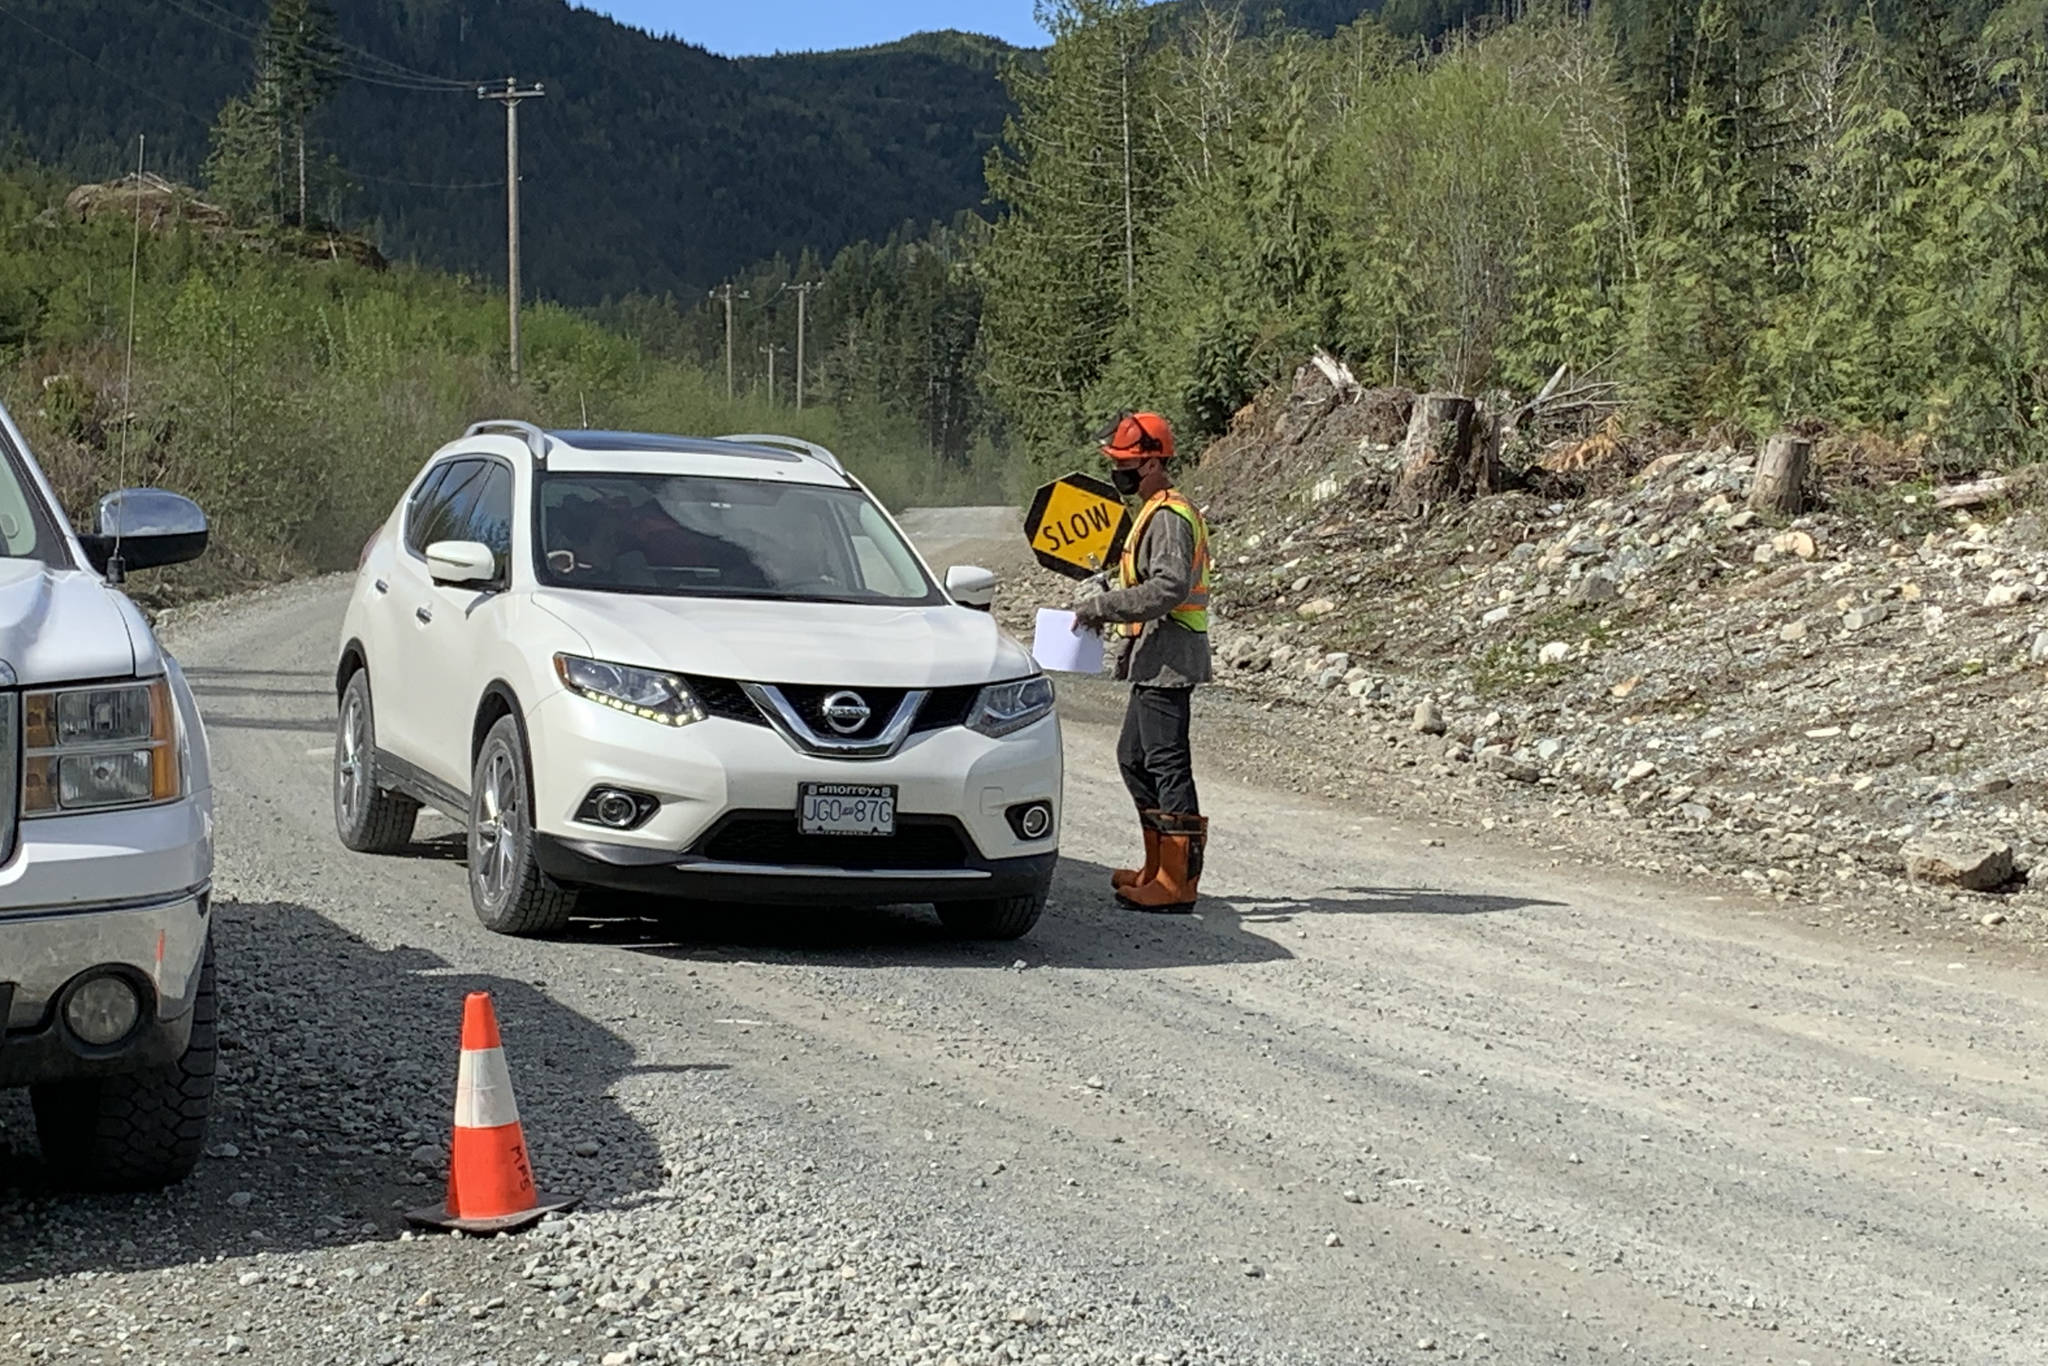 Members of Huu-ay-aht First Nations conducted two checkpoints on Monday, May 10, asking people who enter the territory to respect the sacred principles and to act accordingly while on Huu-ay-aht land. (SUBMITTED PHOTO)